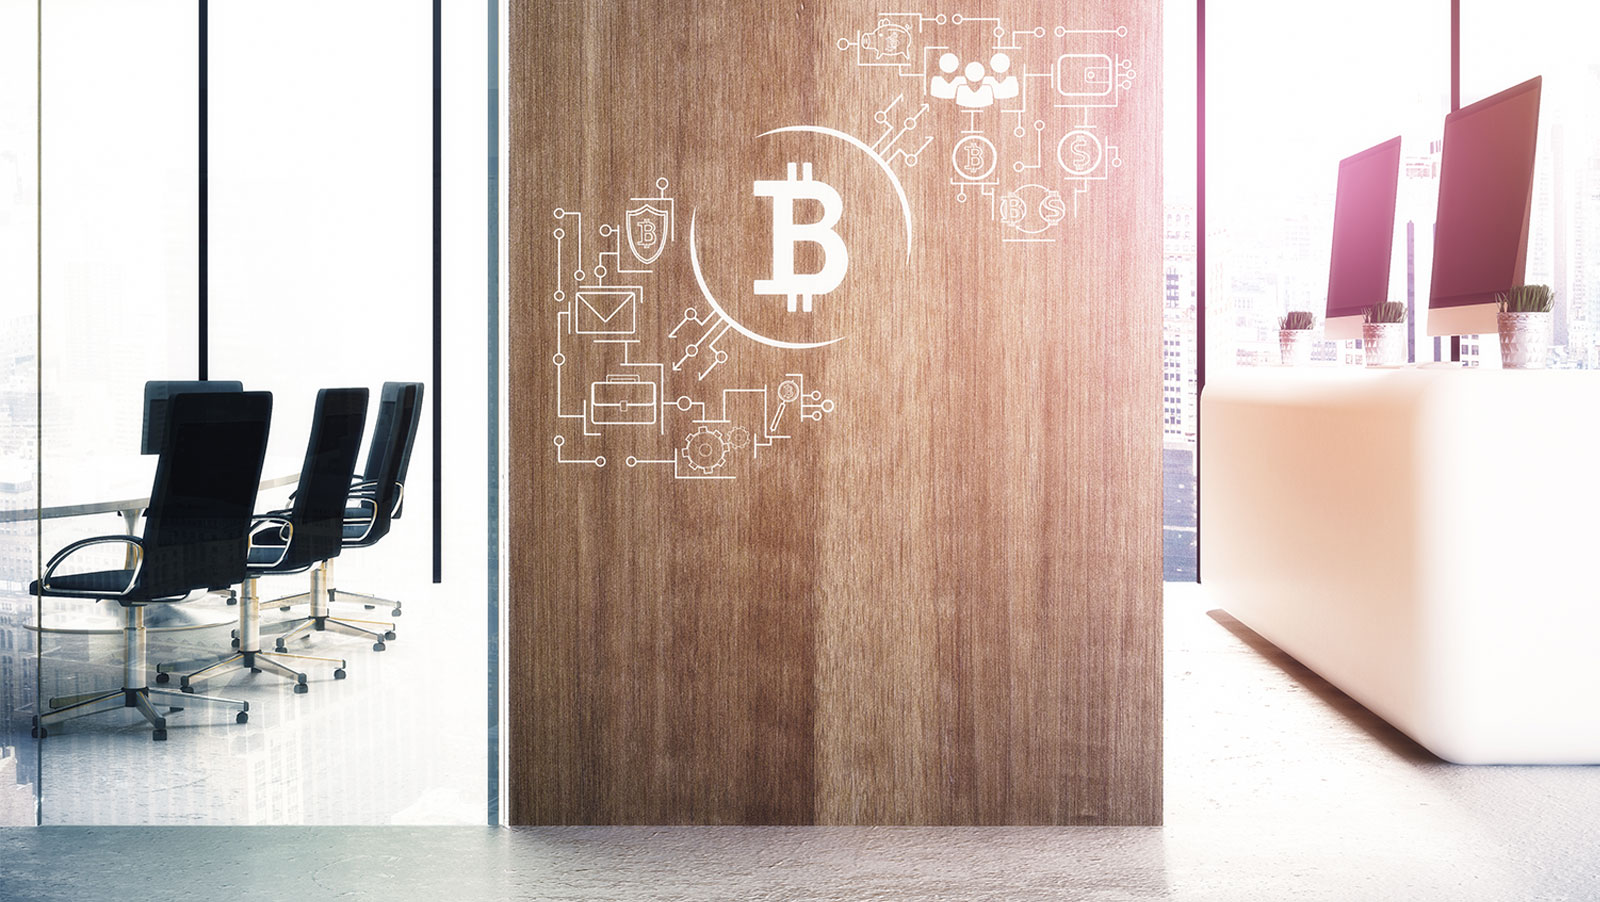 Becky's Affiliated: iGaming companies can benefit from being a BCH early mover